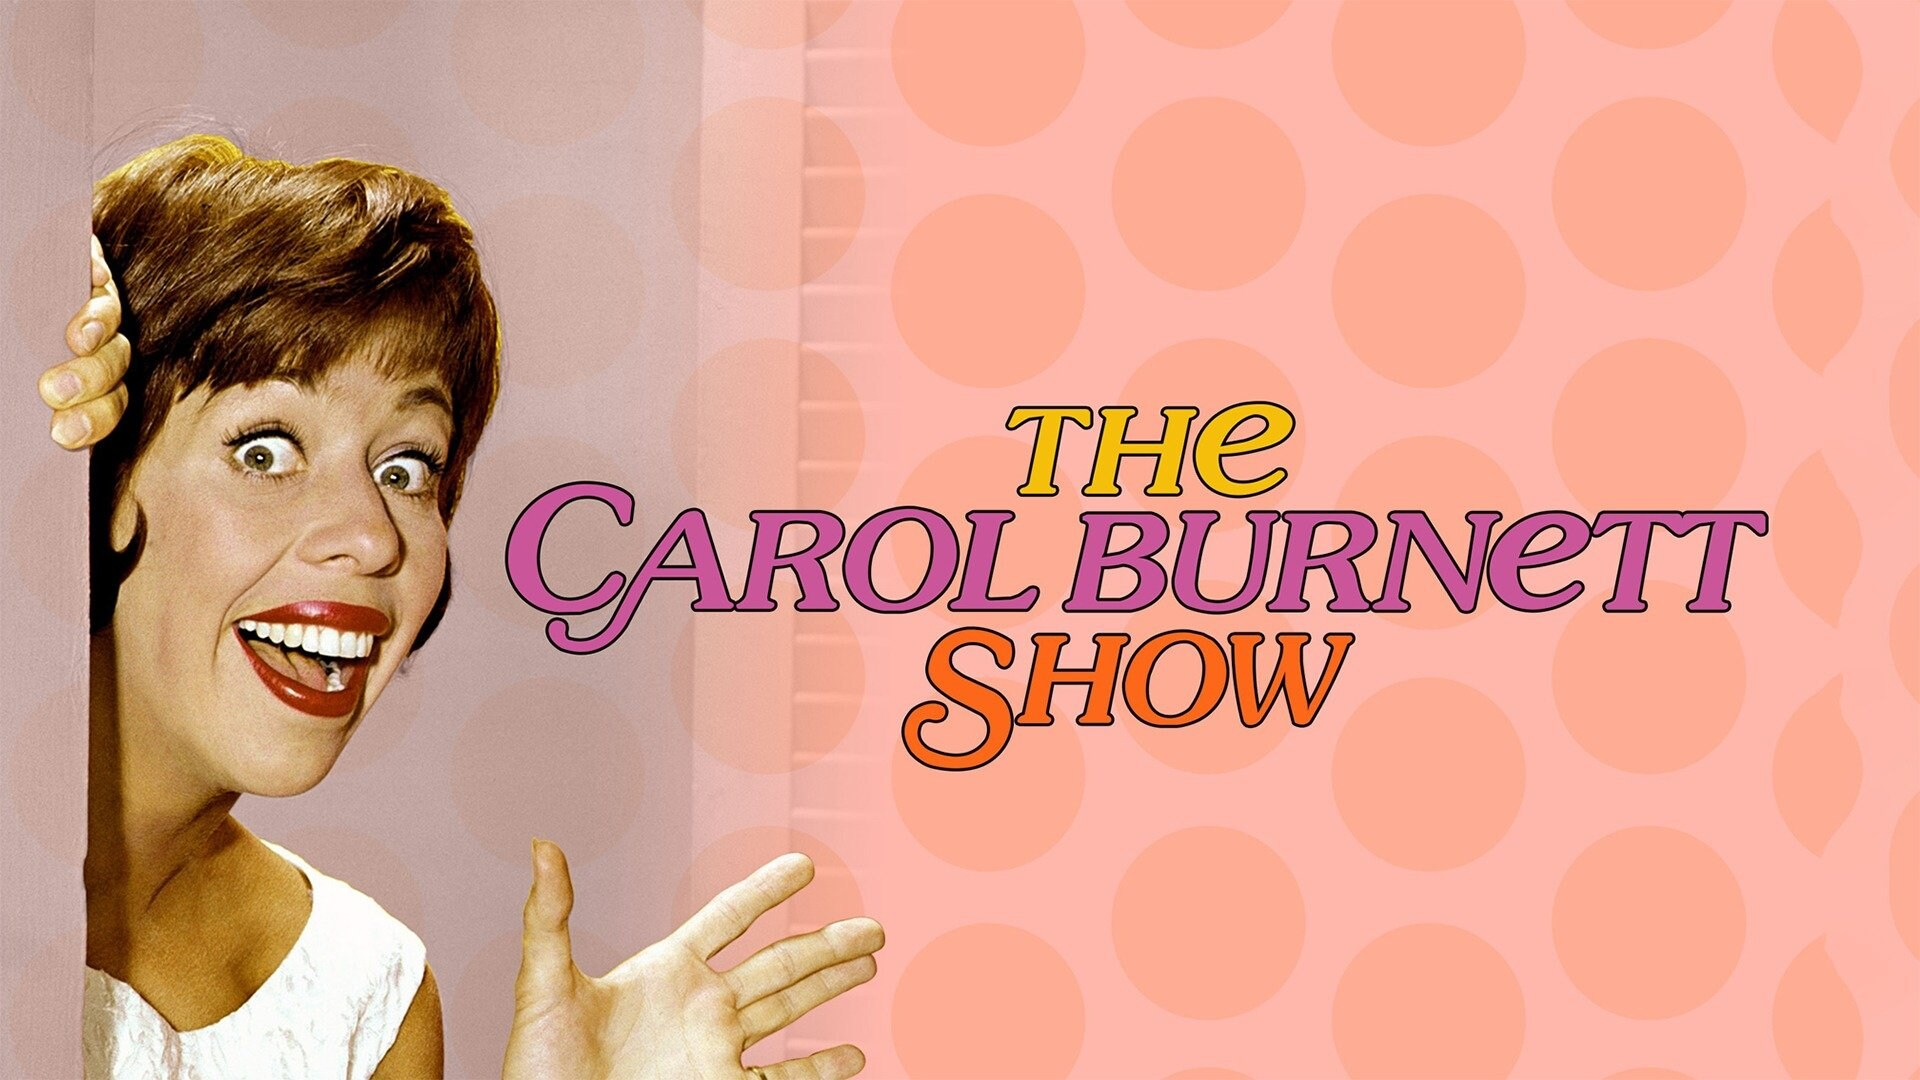 The Carol Burnett Show (The Lost Episodes) Episode 3